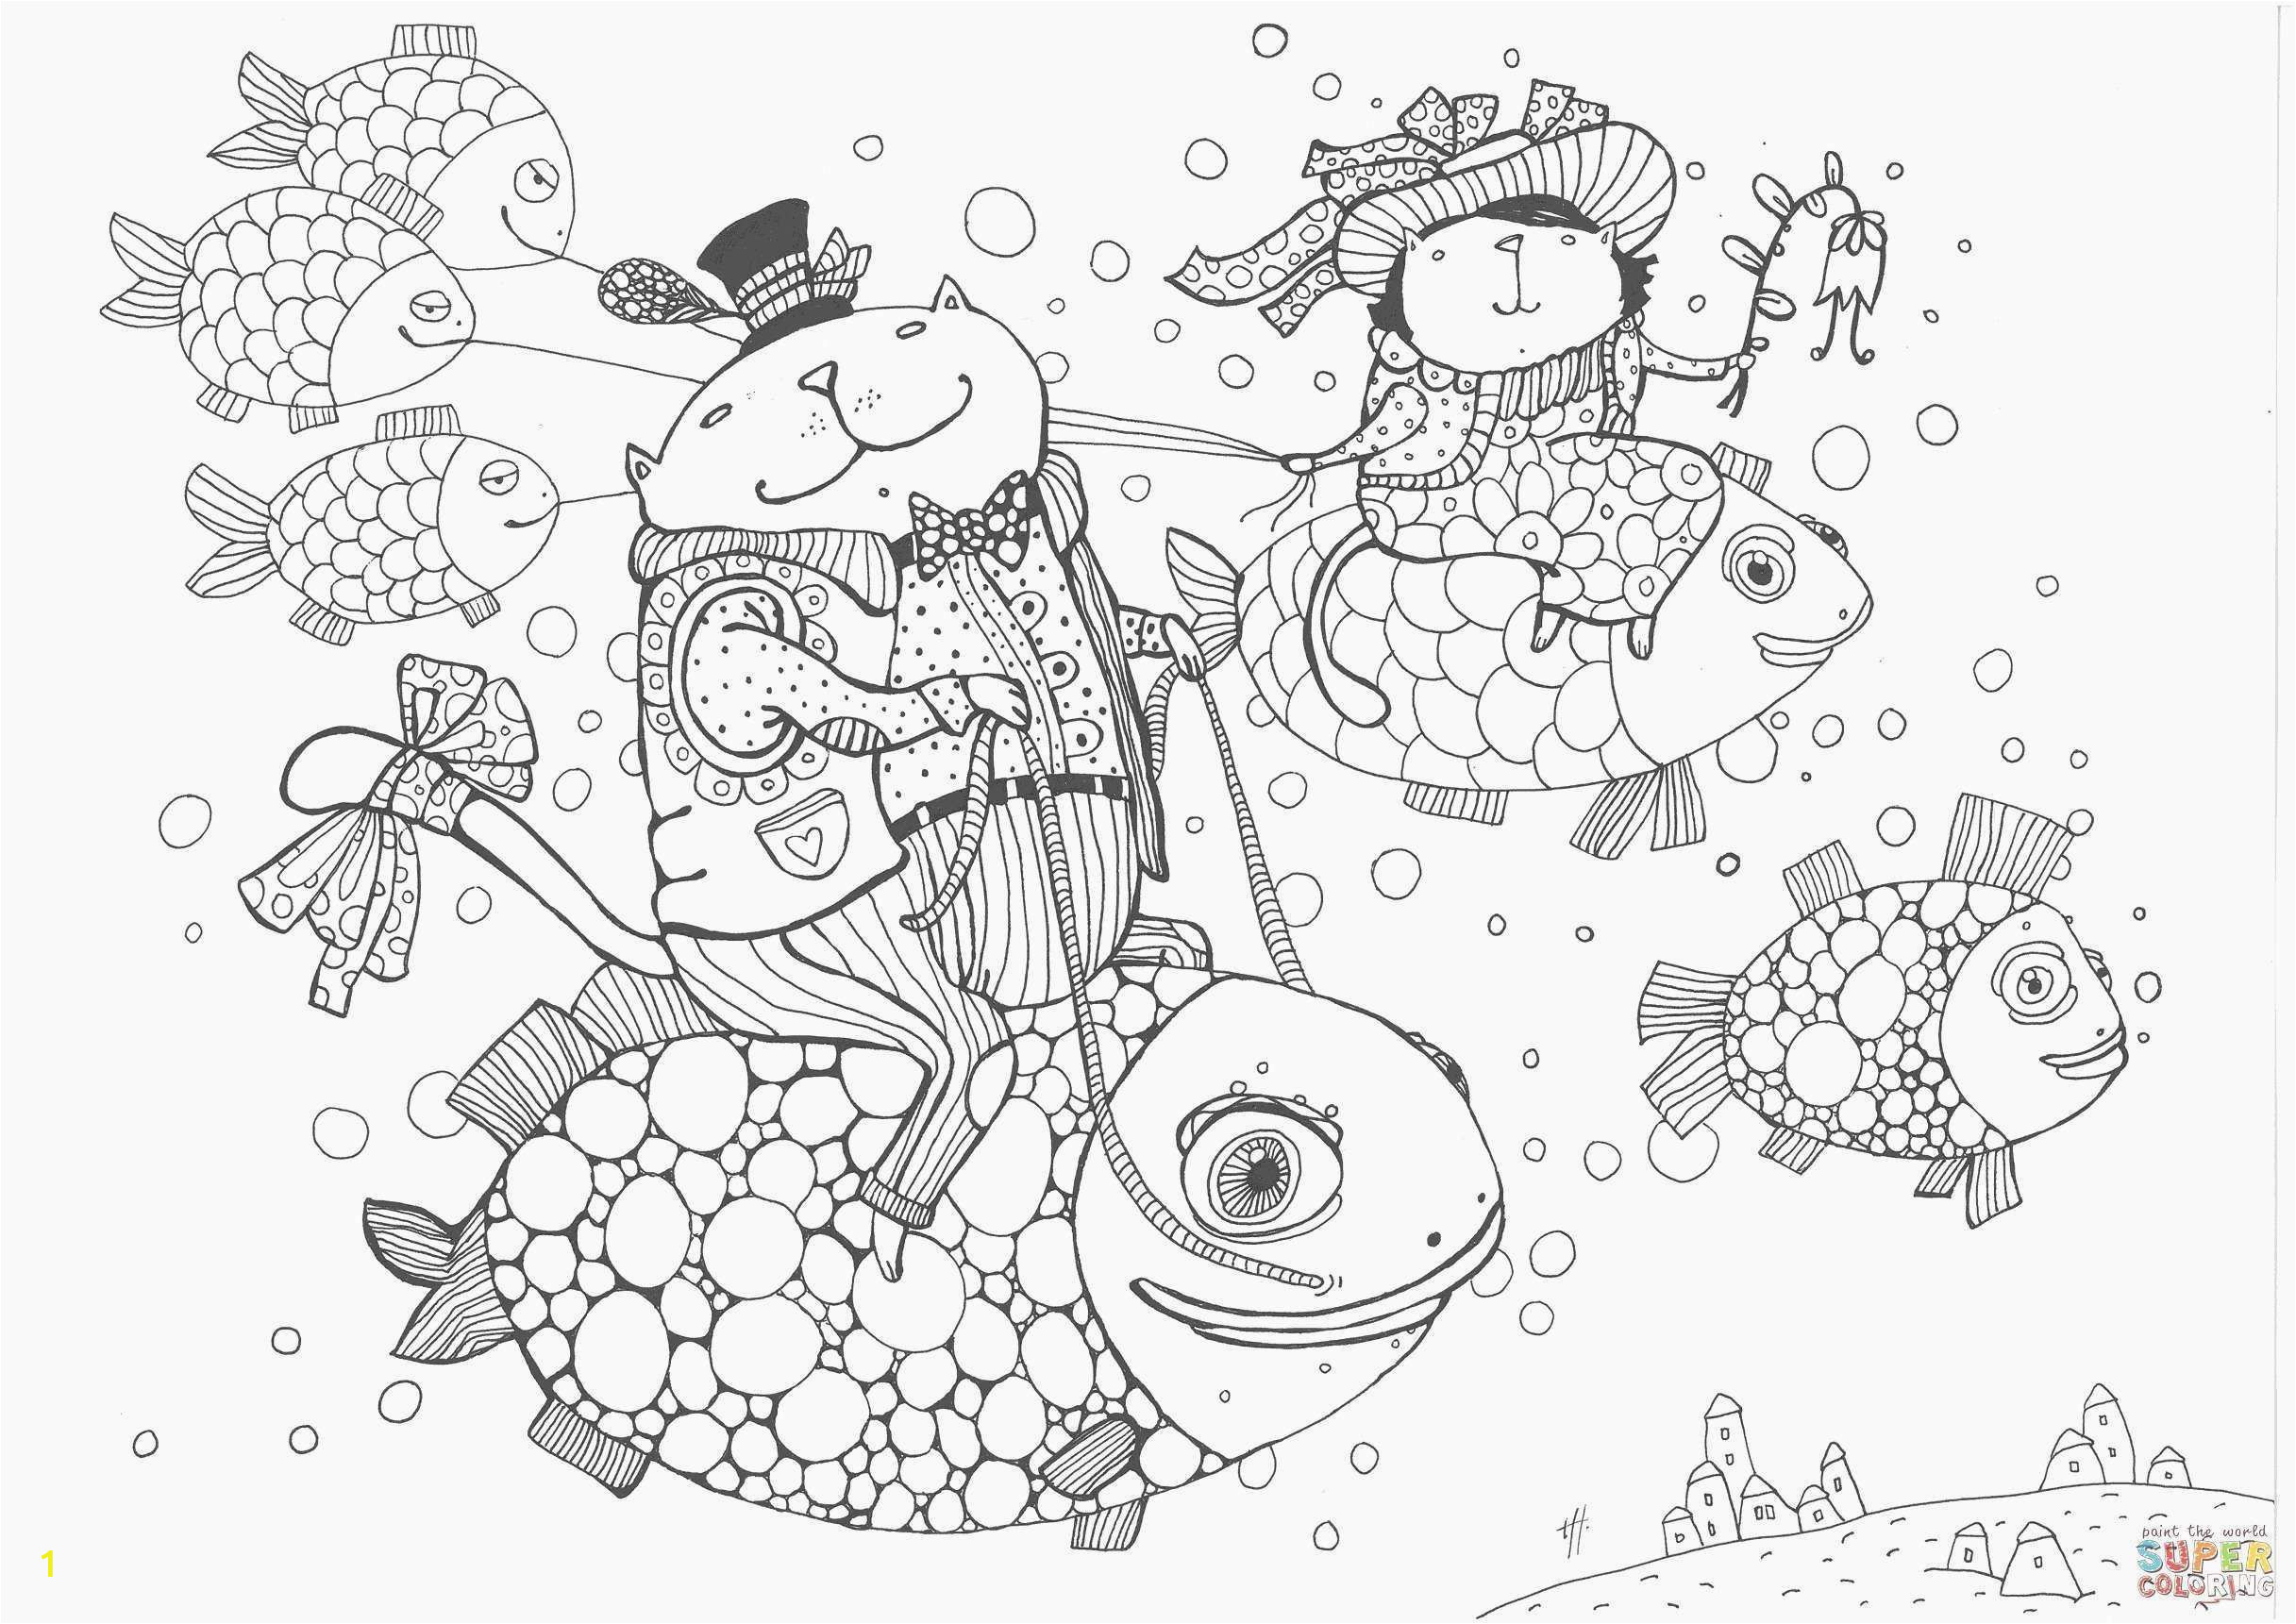 printable coloring pages christmas ballerina book barbie family religious thomas kinkade able for adults sheets dog kids worksheets grade fox preschoolers winter toddlers peppa